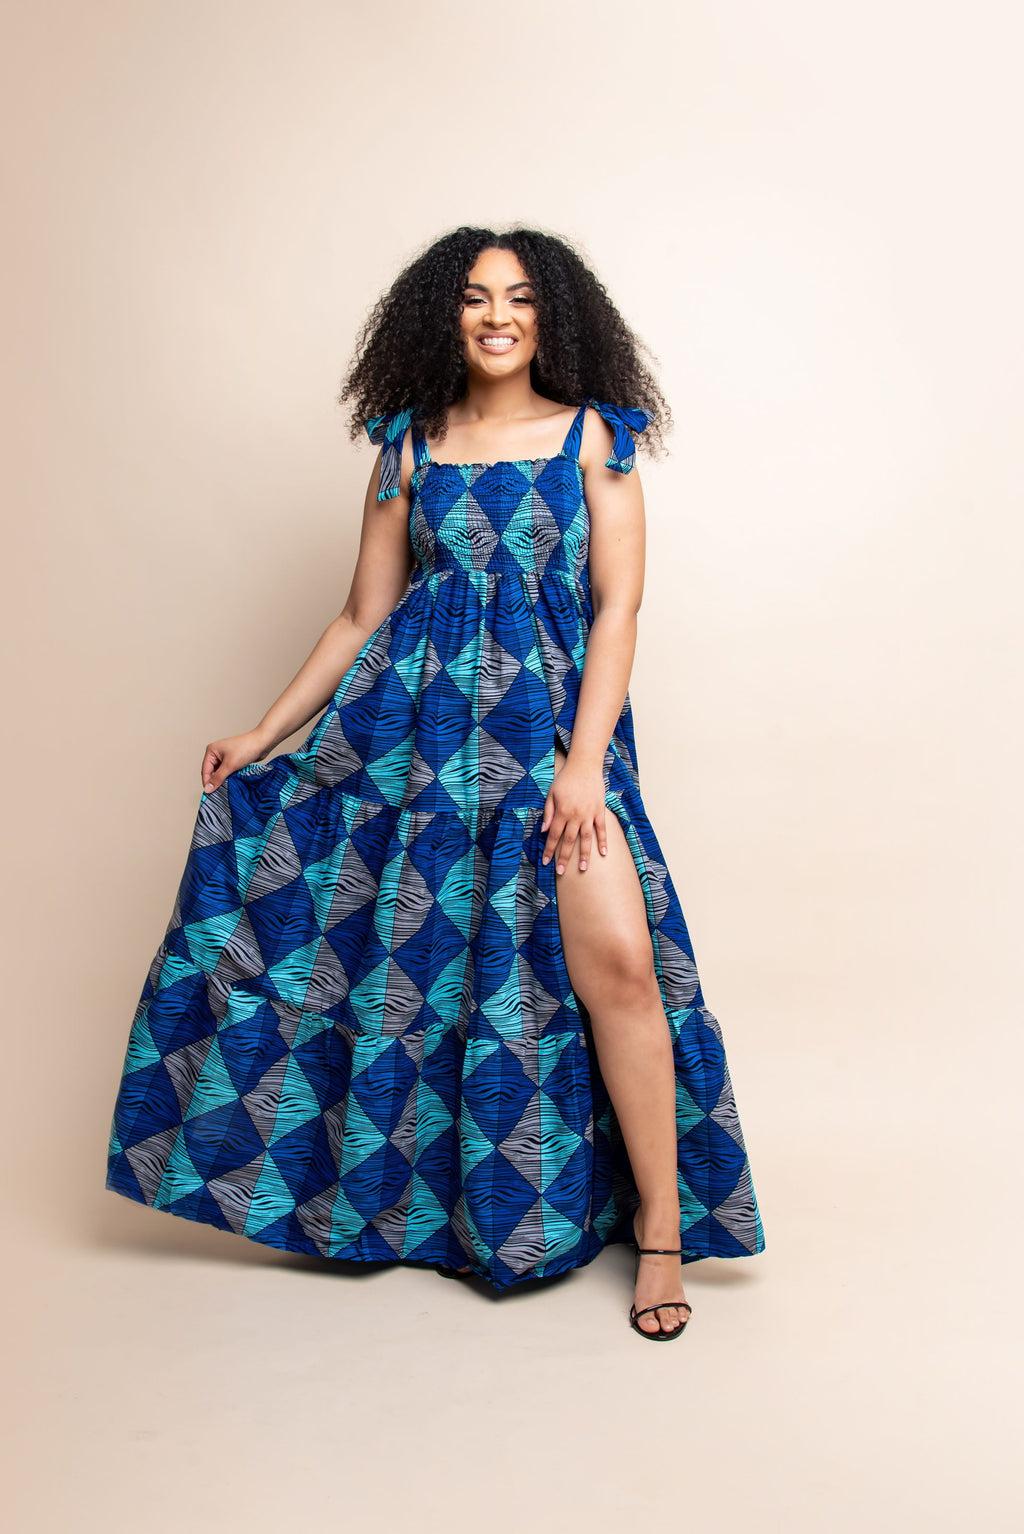 BOSE African print off smocked maxi dress (TIE)